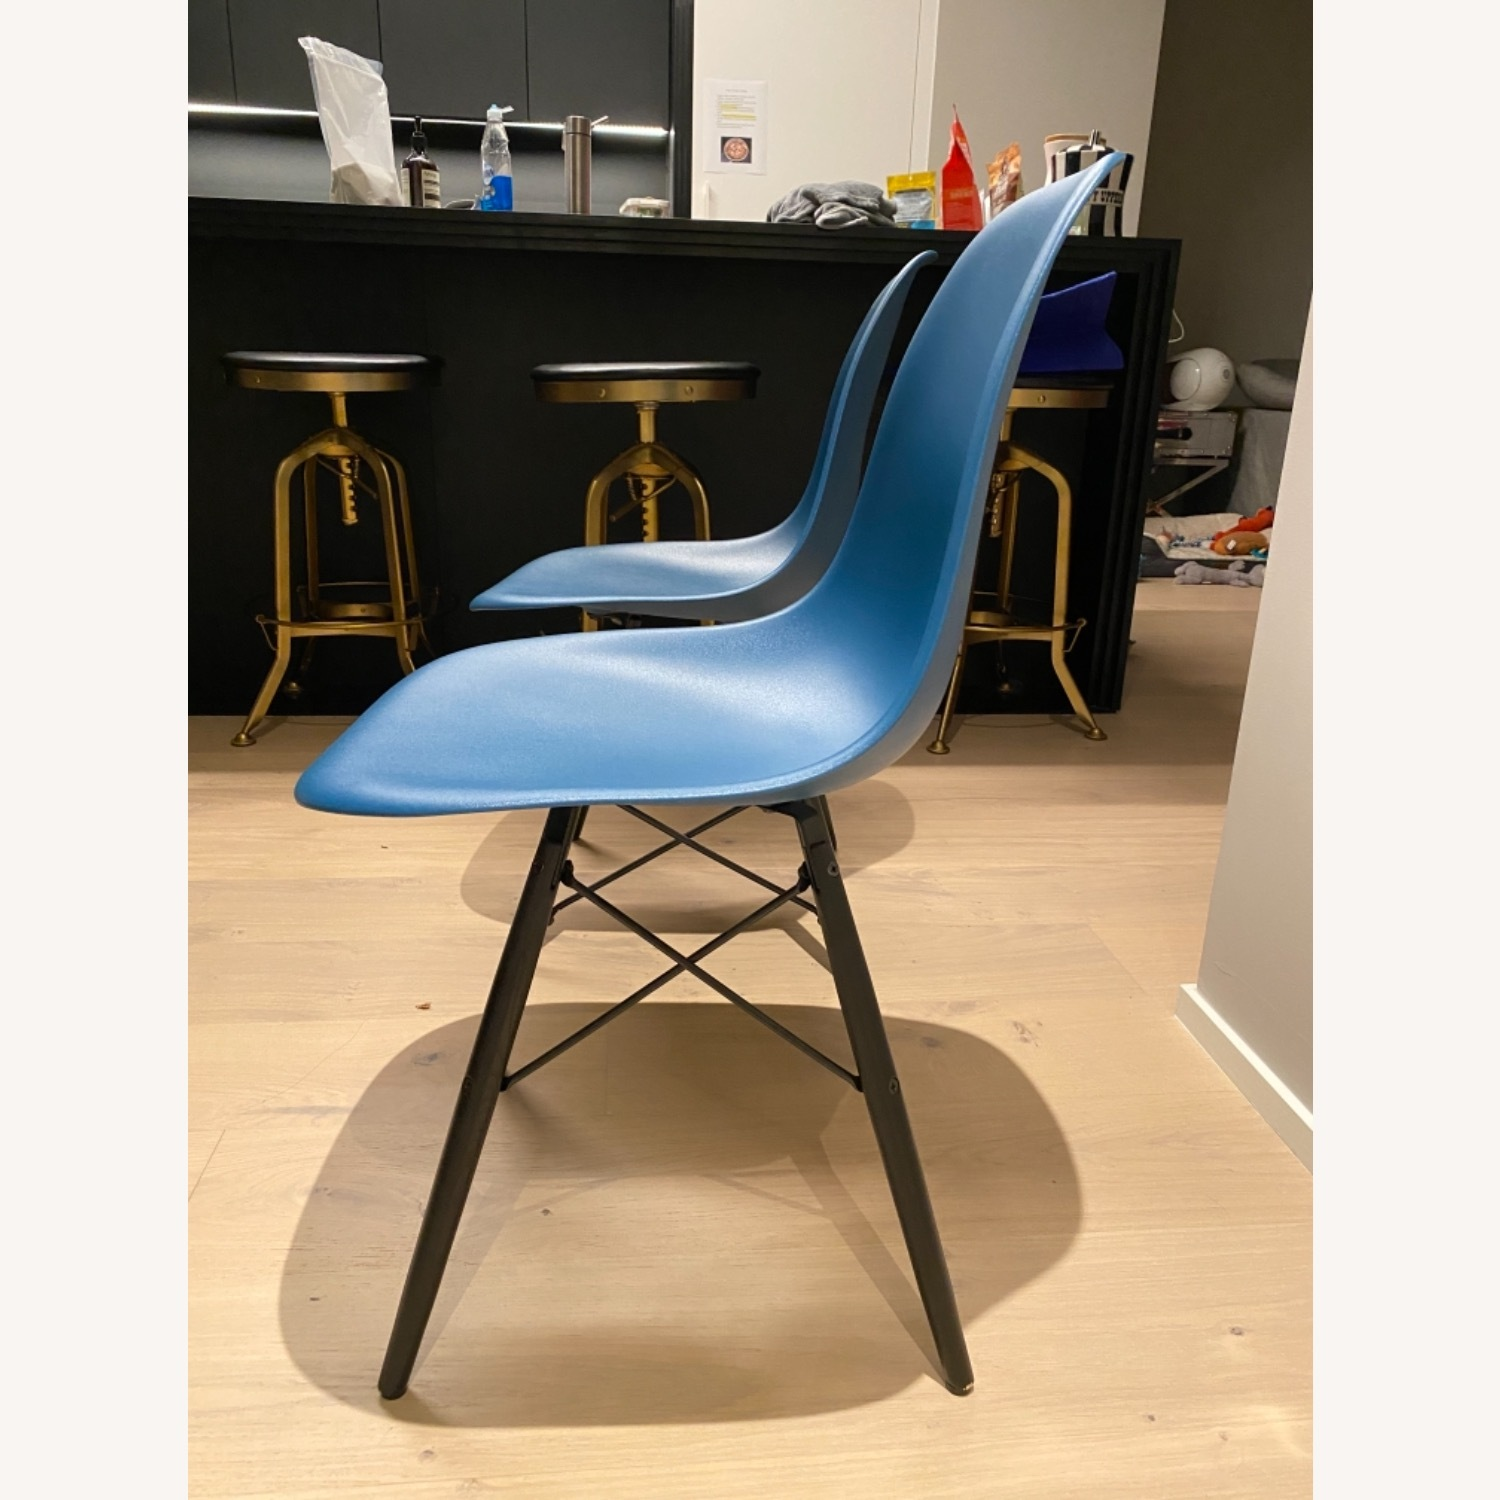 4 x Herman Miller Eames Molded Plastic Side Chair - image-10